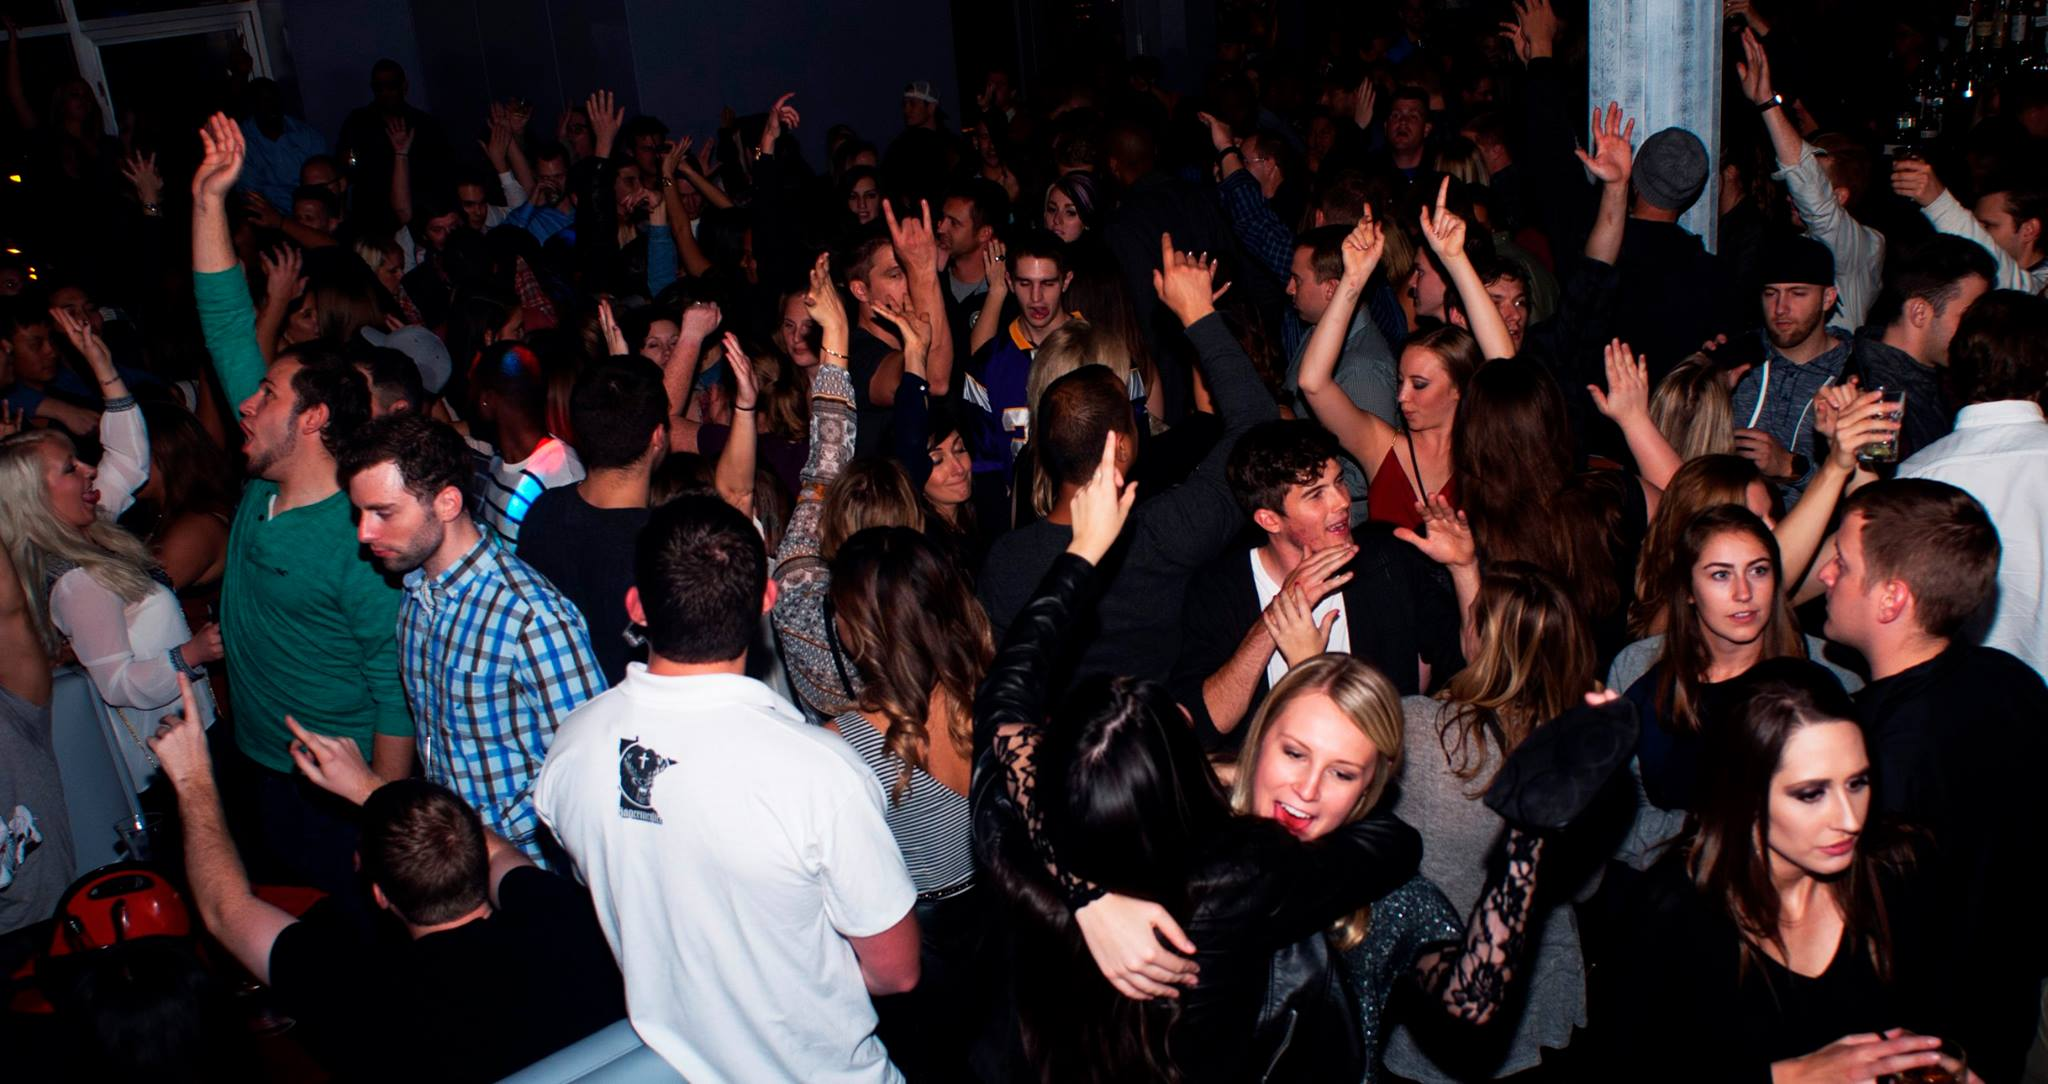 Party at Fremont.jpg